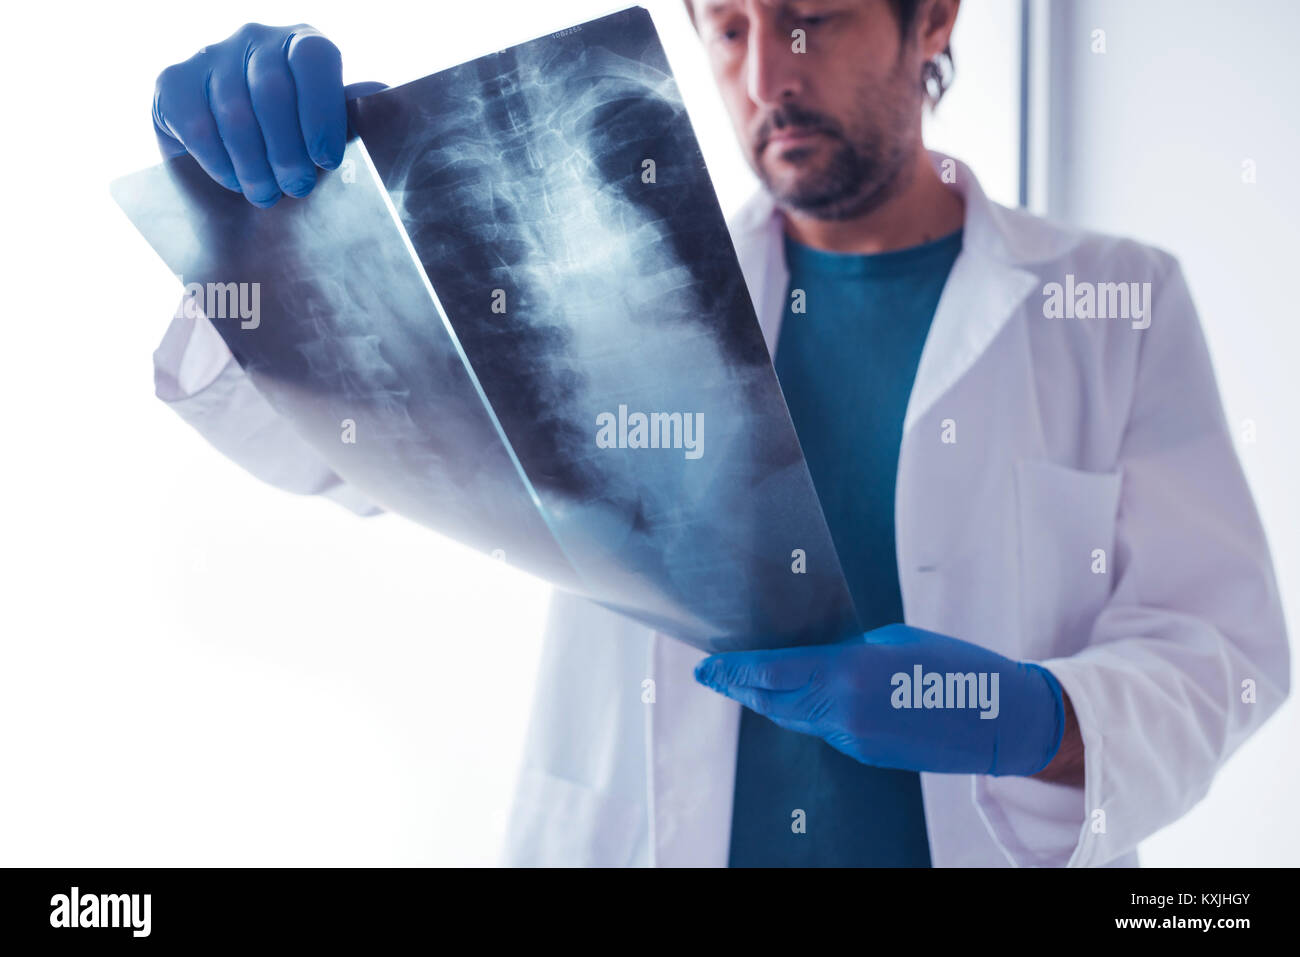 Doctor analyzing x-ray of the patient's spine in a medical clinic. Healthcare professional examining imaging - Stock Image